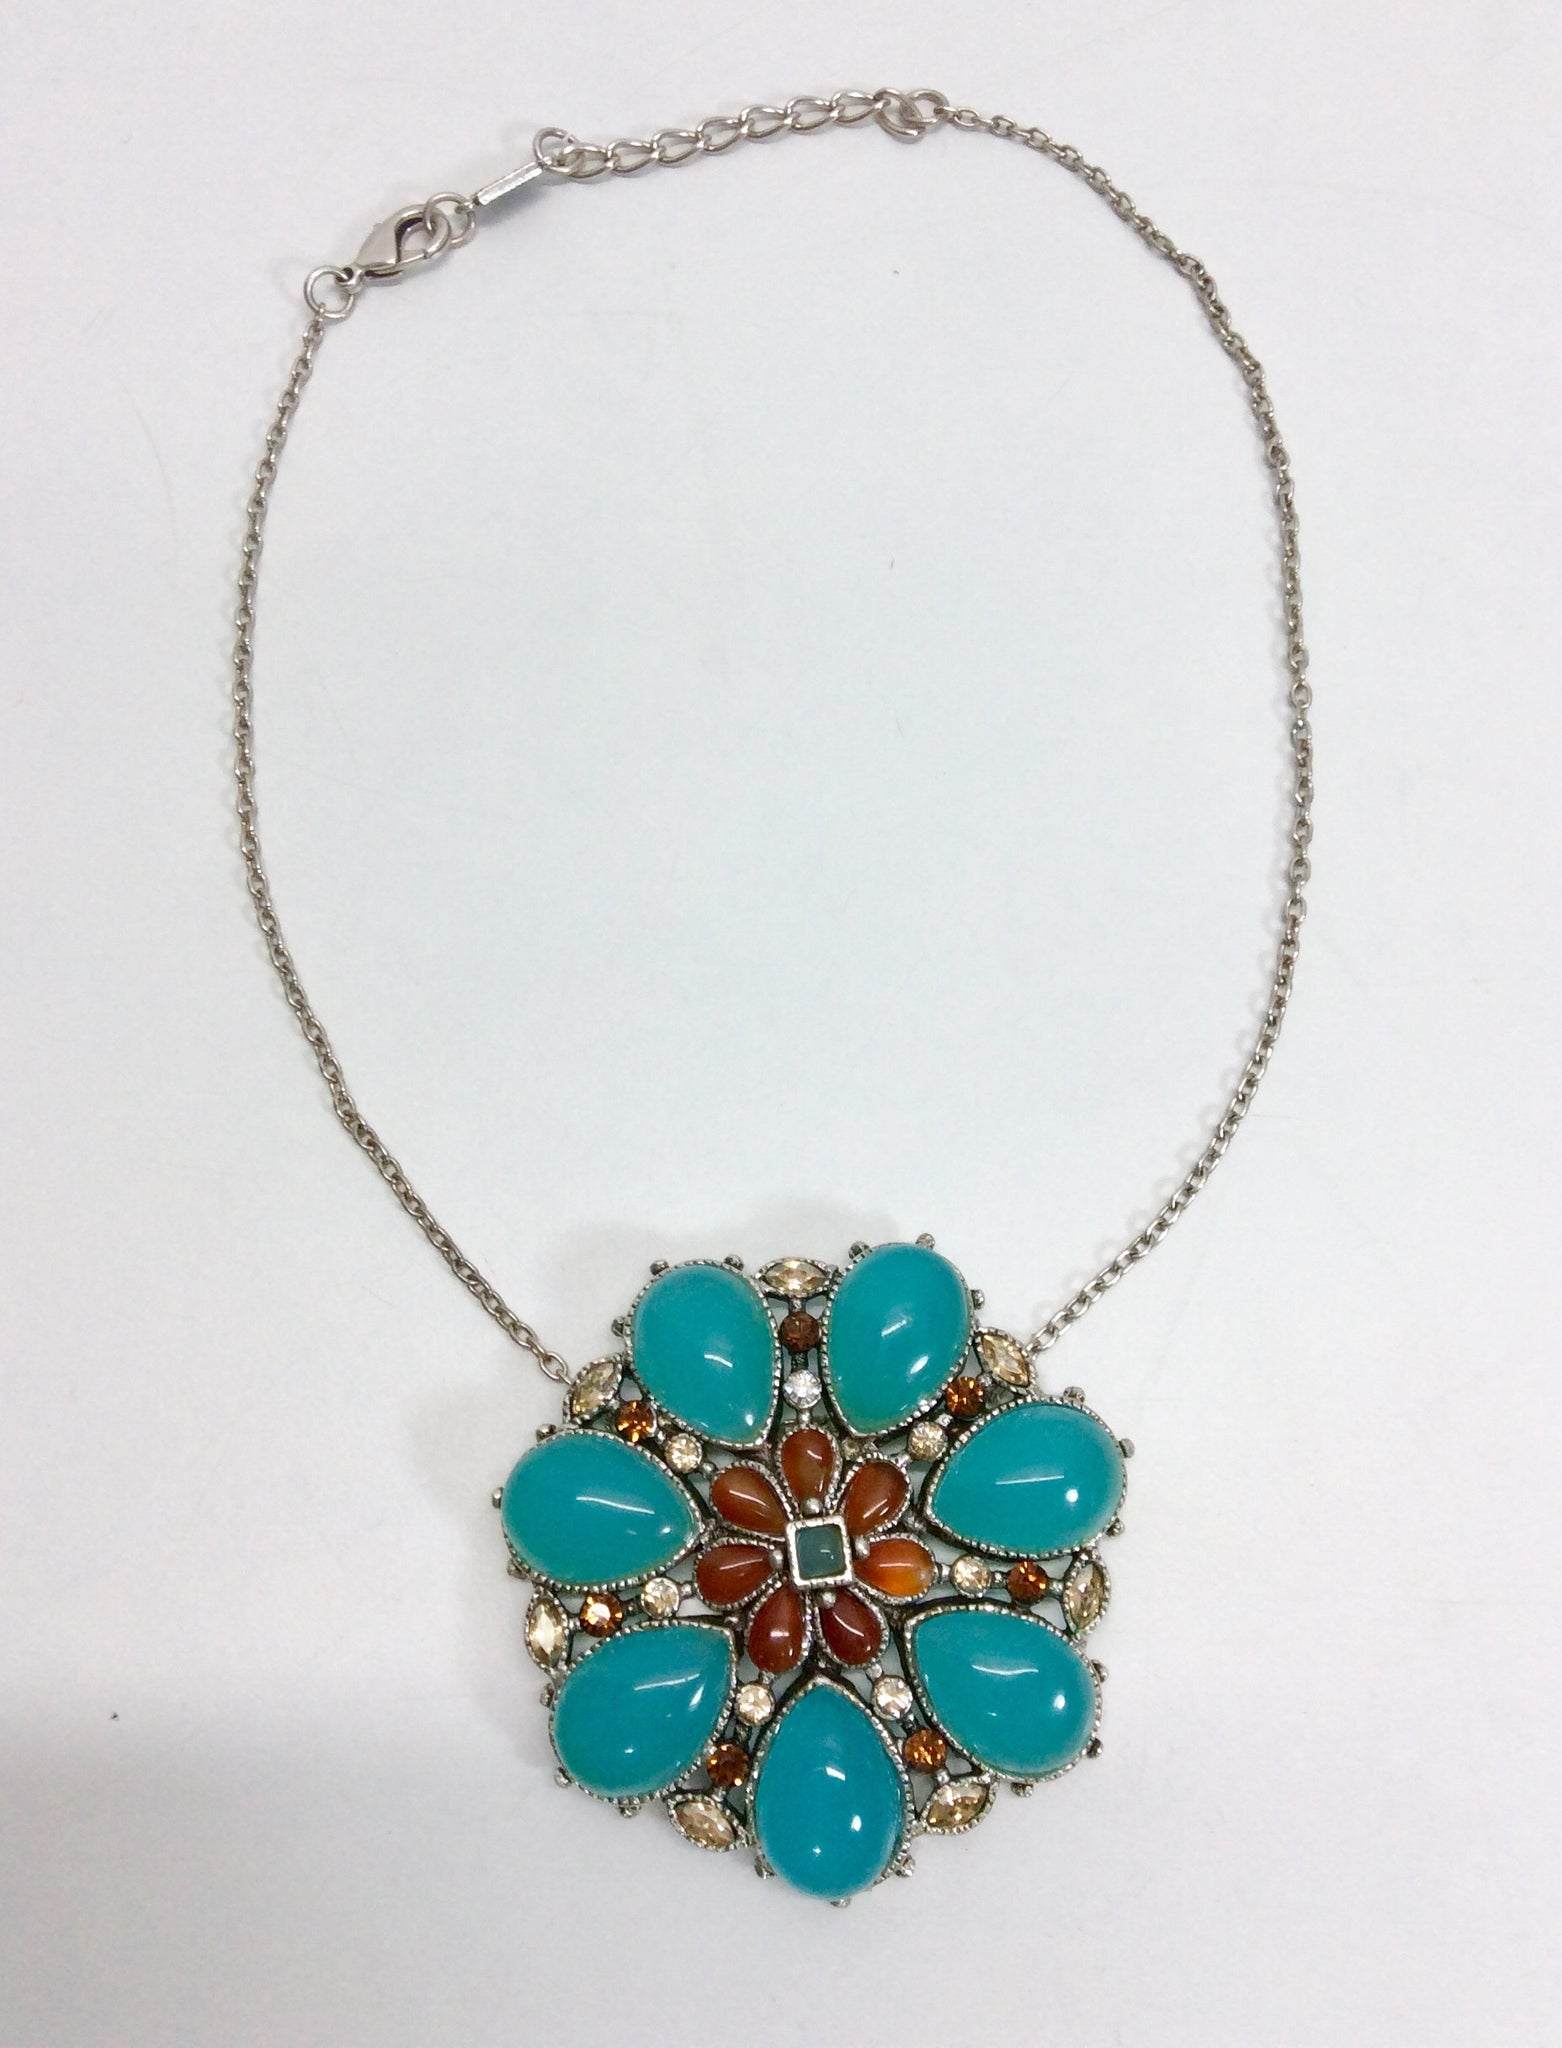 French floral design with turquoise stones and crystal detail silver plated necklace